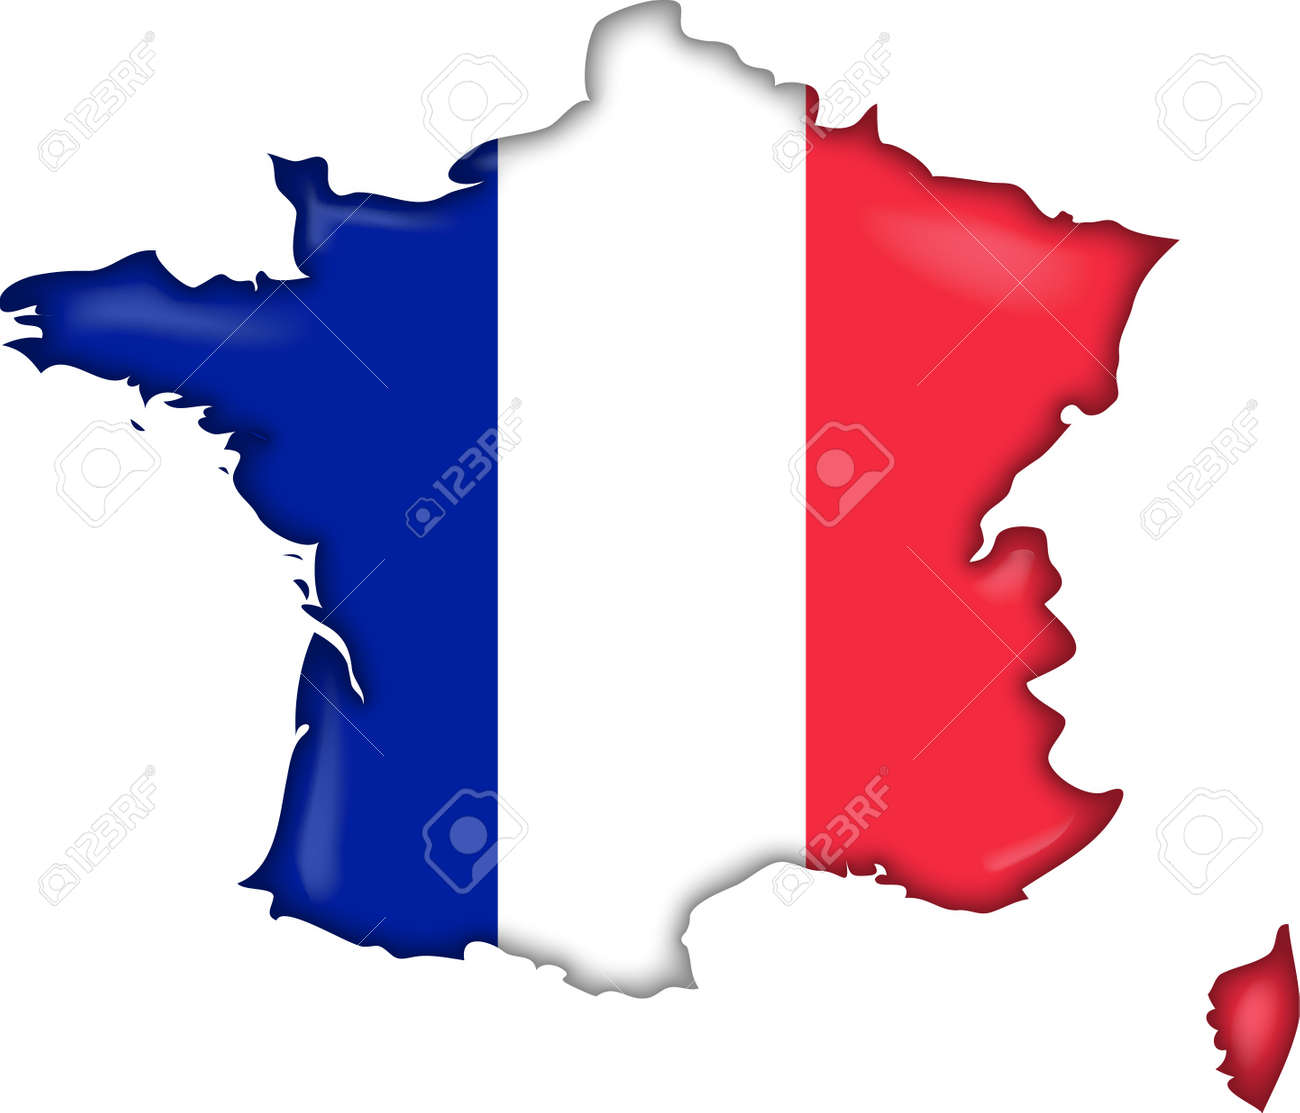 France Map Flag.Map Flag France Stock Photo Picture And Royalty Free Image Image